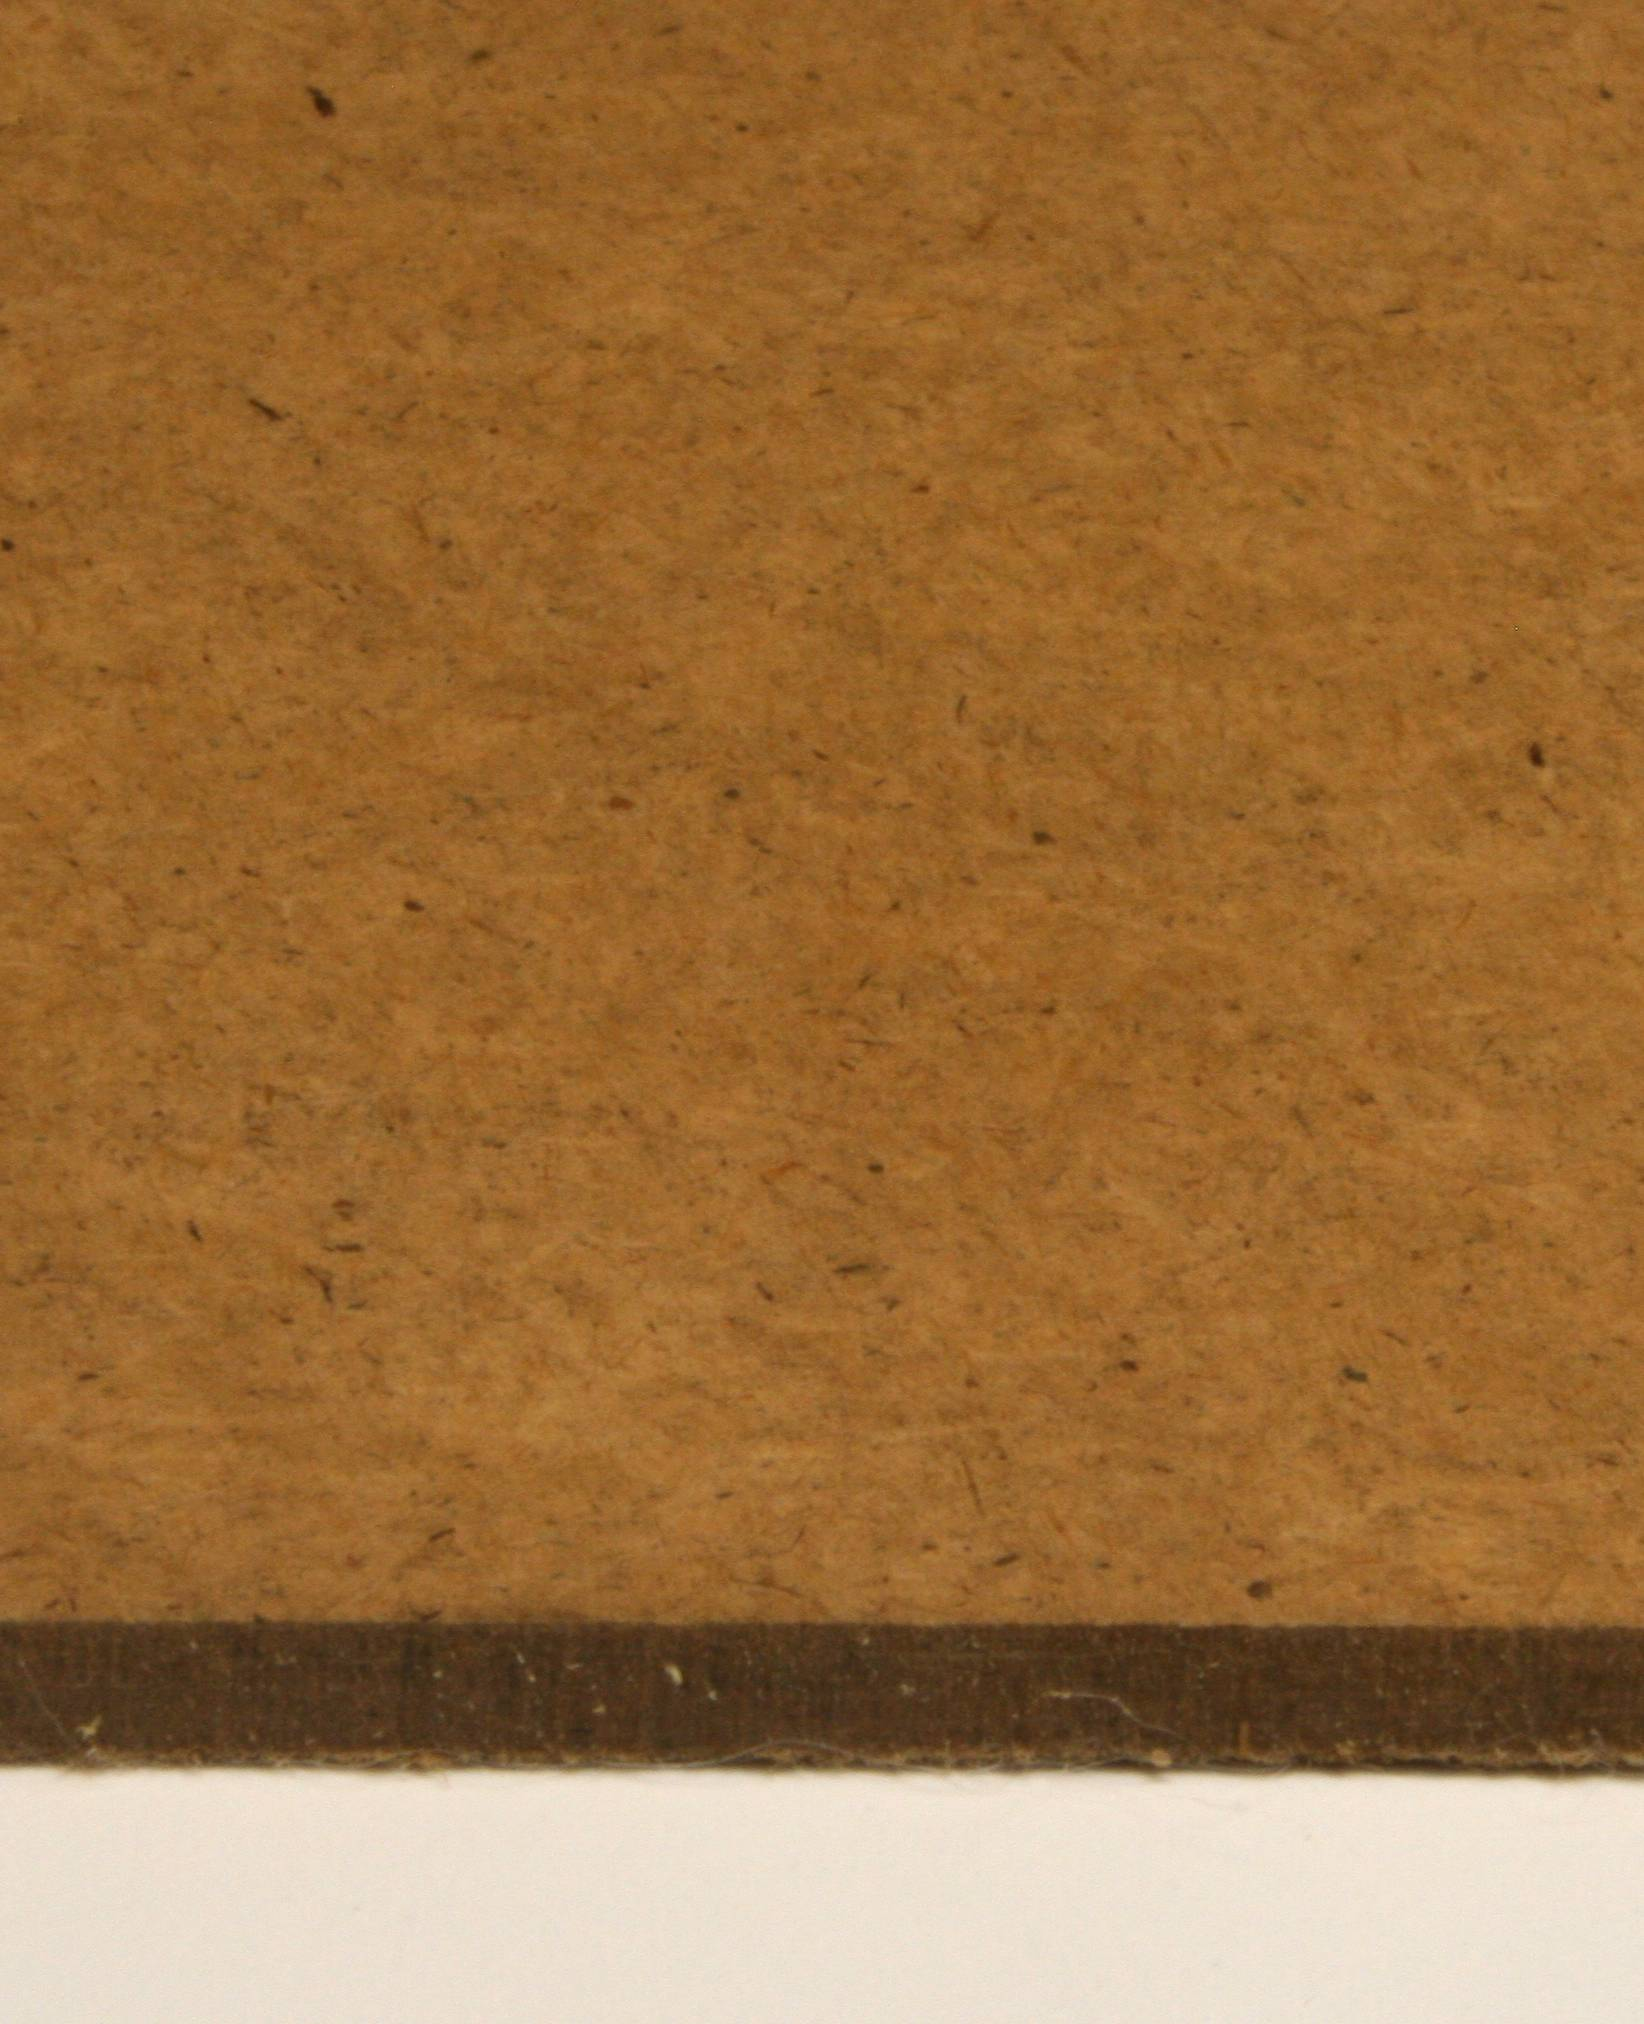 Masonite Board Used In Yamaha Montage Construction